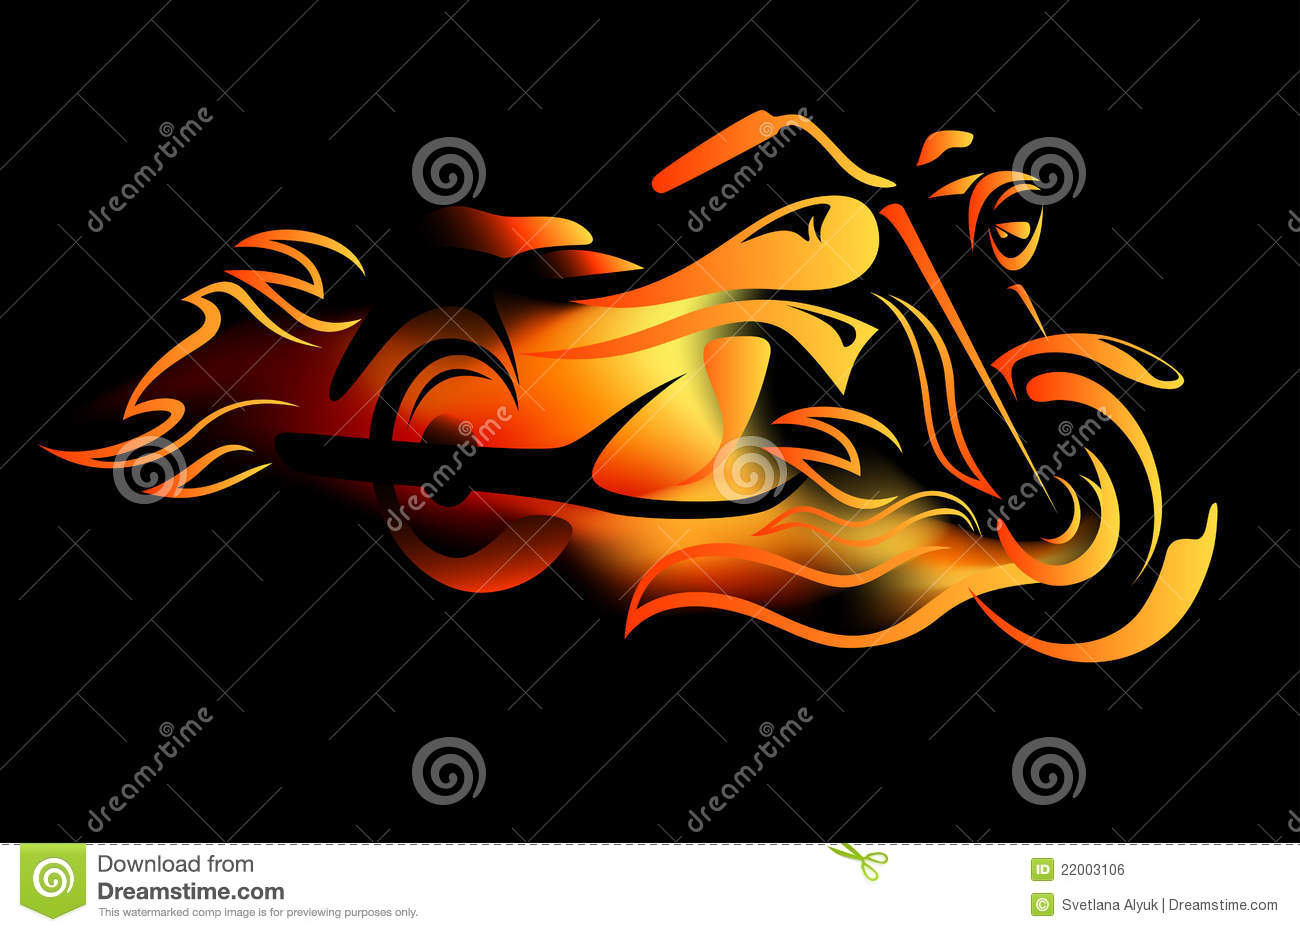 Movement Wallpaper Abstract 3d Fiery Bike Vector Stock Vector Illustration Of Nobody